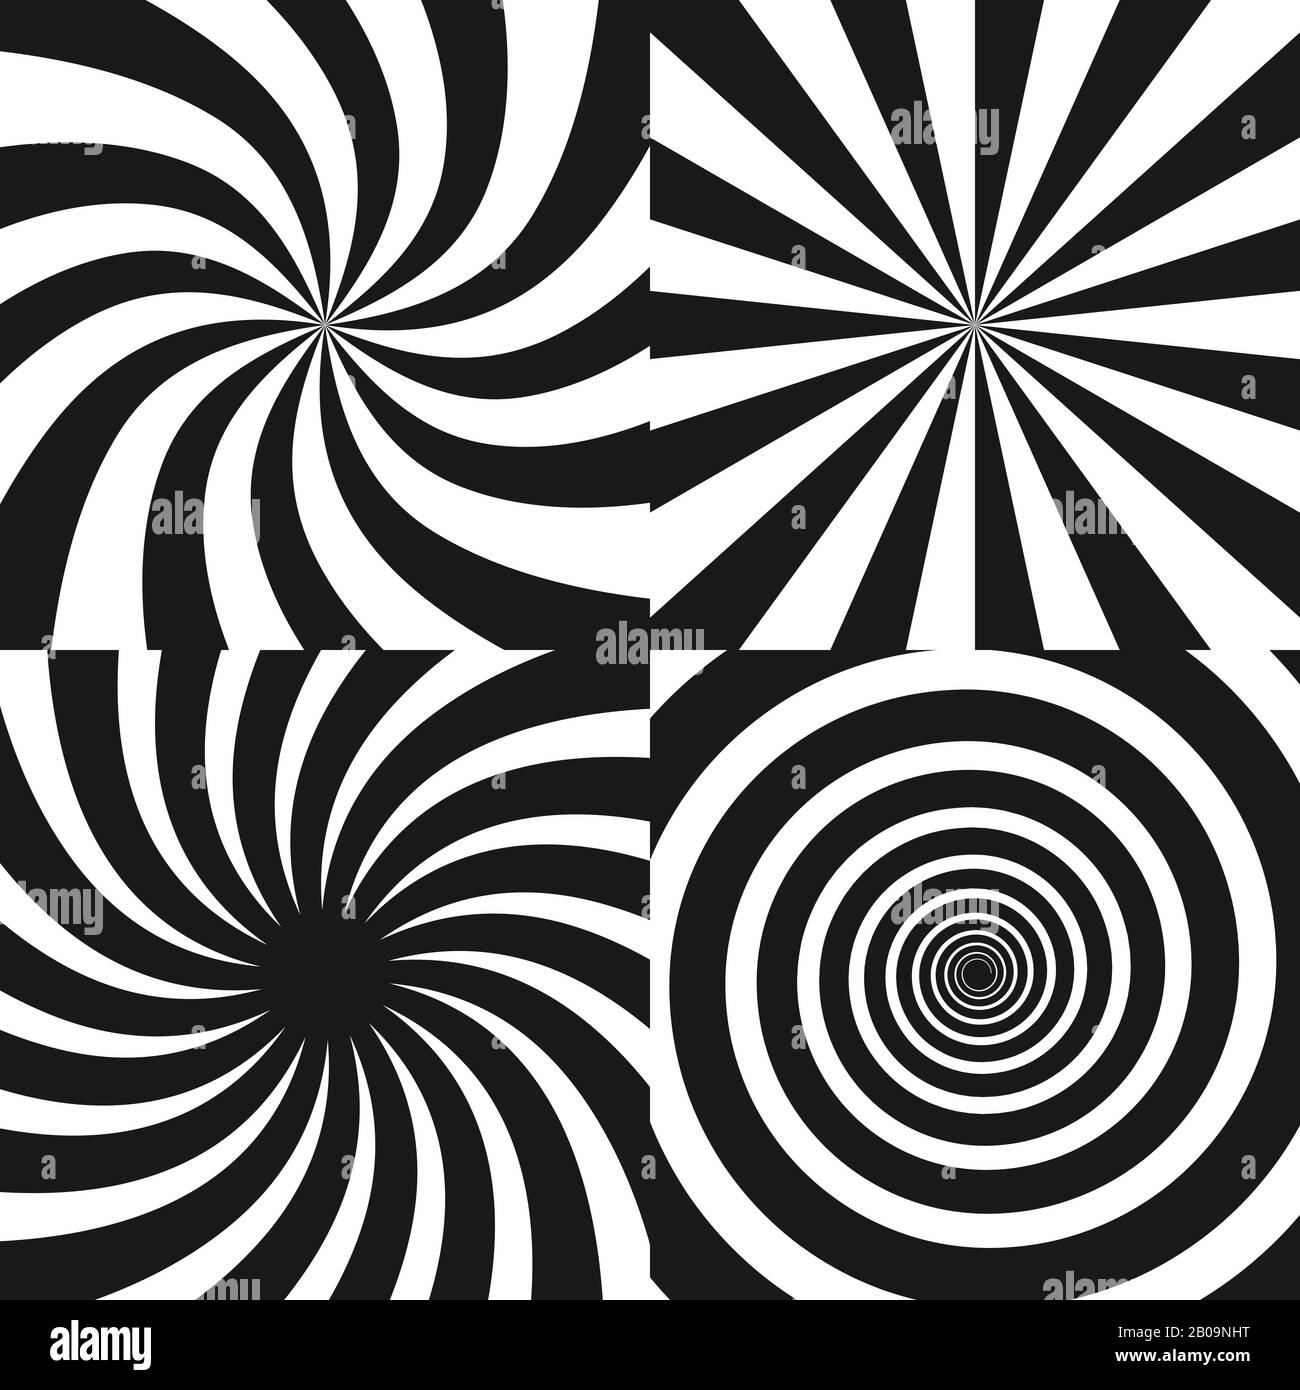 Psychedelic Stock Vector Images Alamy